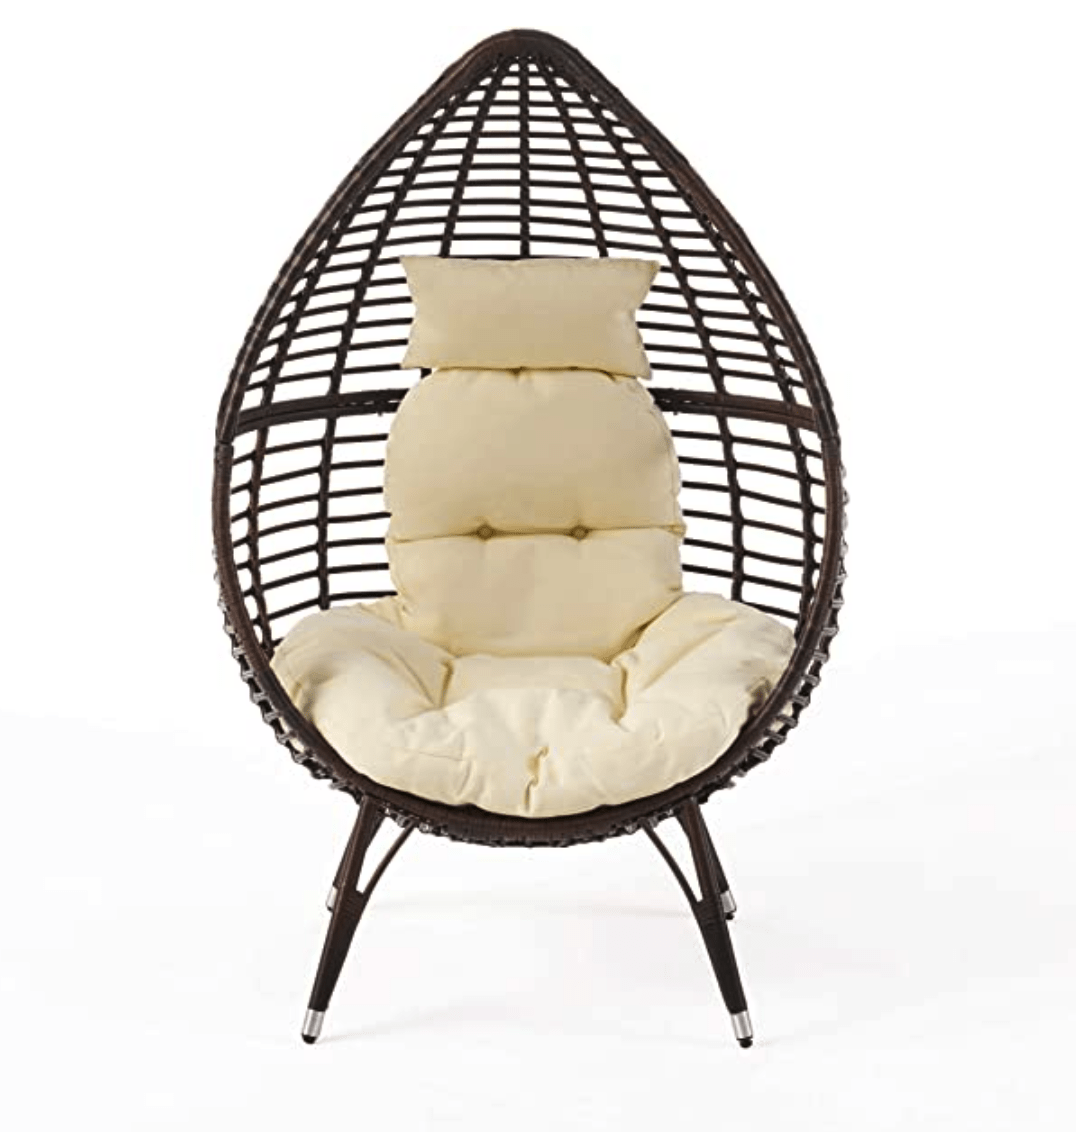 Affordable and Cheap Patio Egg Chair